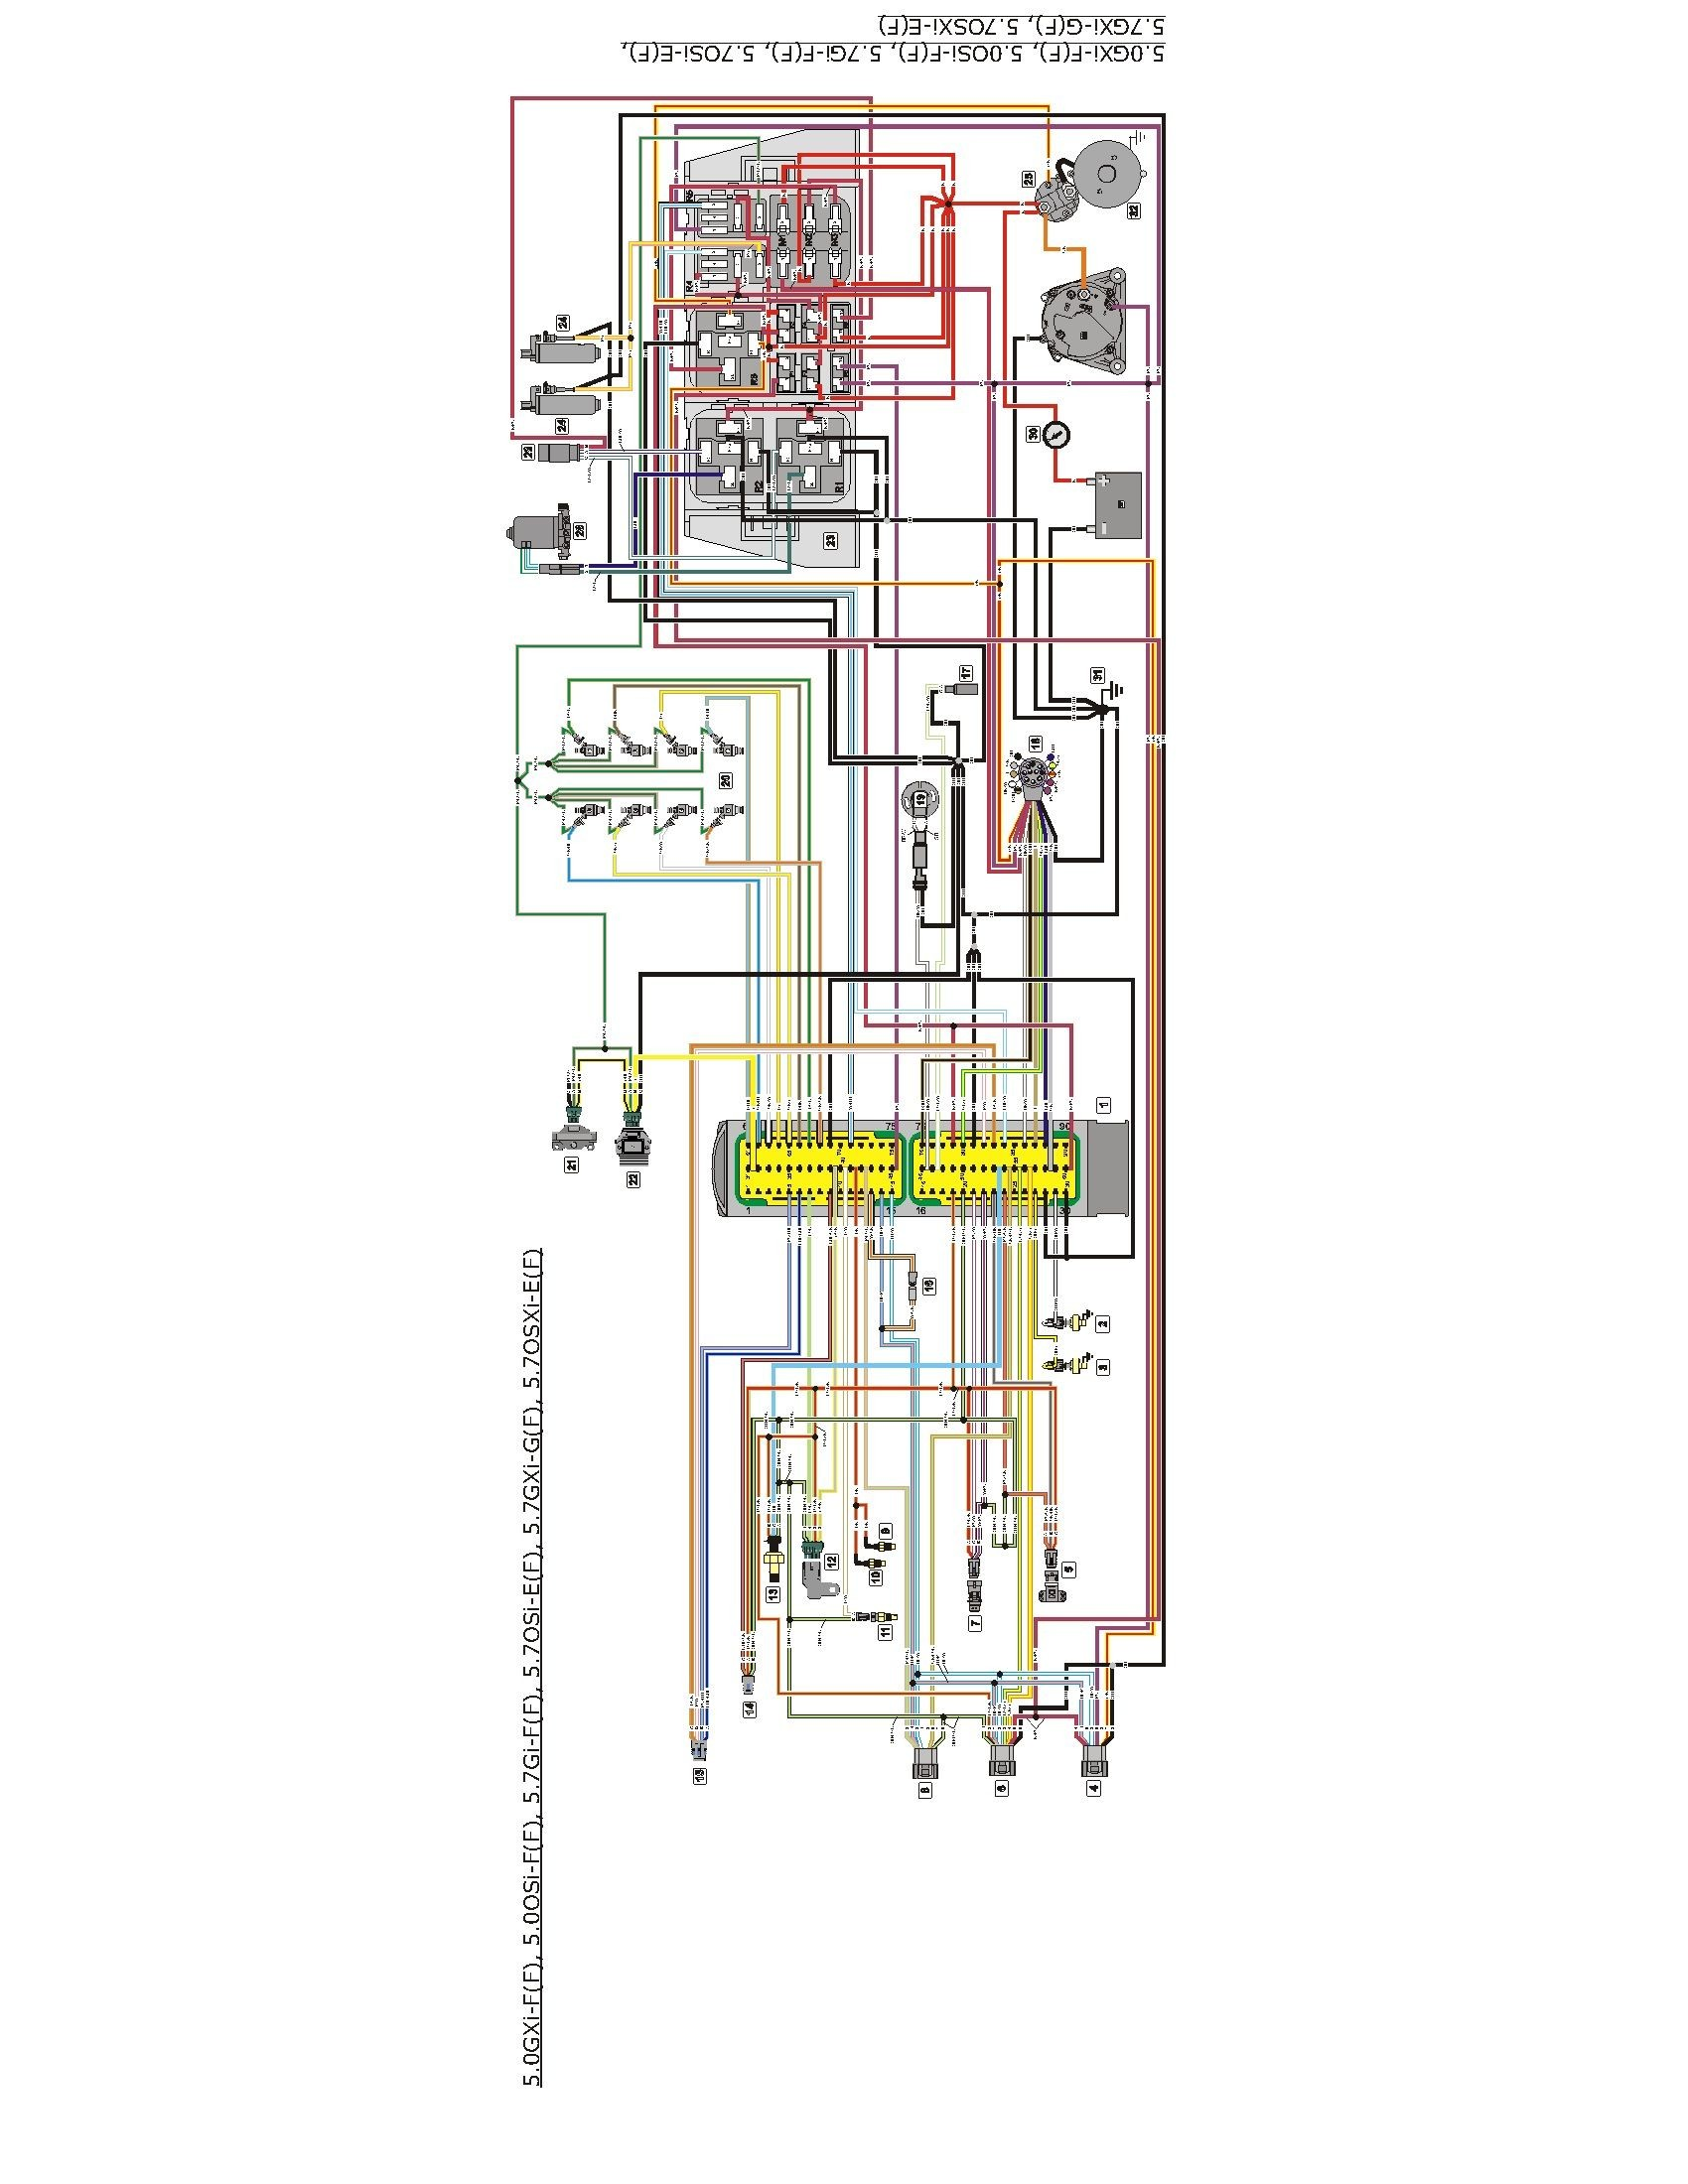 Volvo Penta 5 7 Wiring Diagram - Wiring Diagram Direct blue-course -  blue-course.siciliabeb.it | Volvo Penta 5 0 Gi Wiring Diagram |  | blue-course.siciliabeb.it